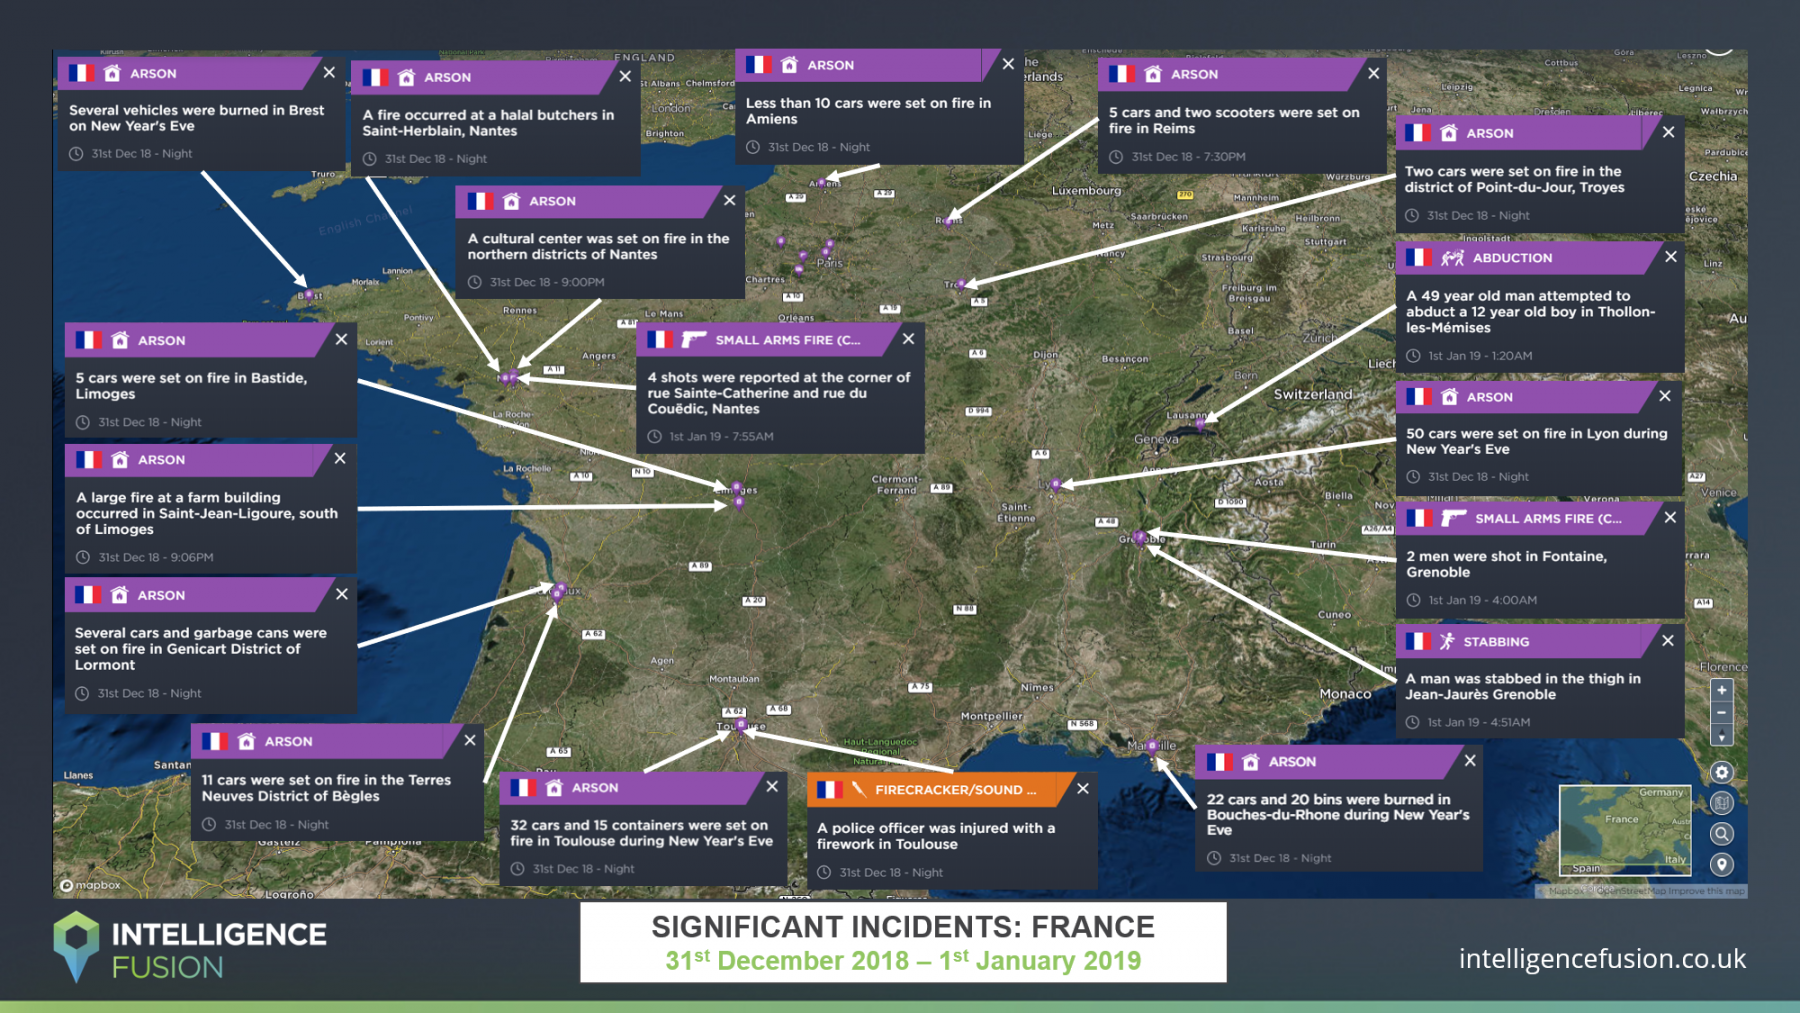 A map highlighting the severe criminality reported across France on New Years Eve 2018/19